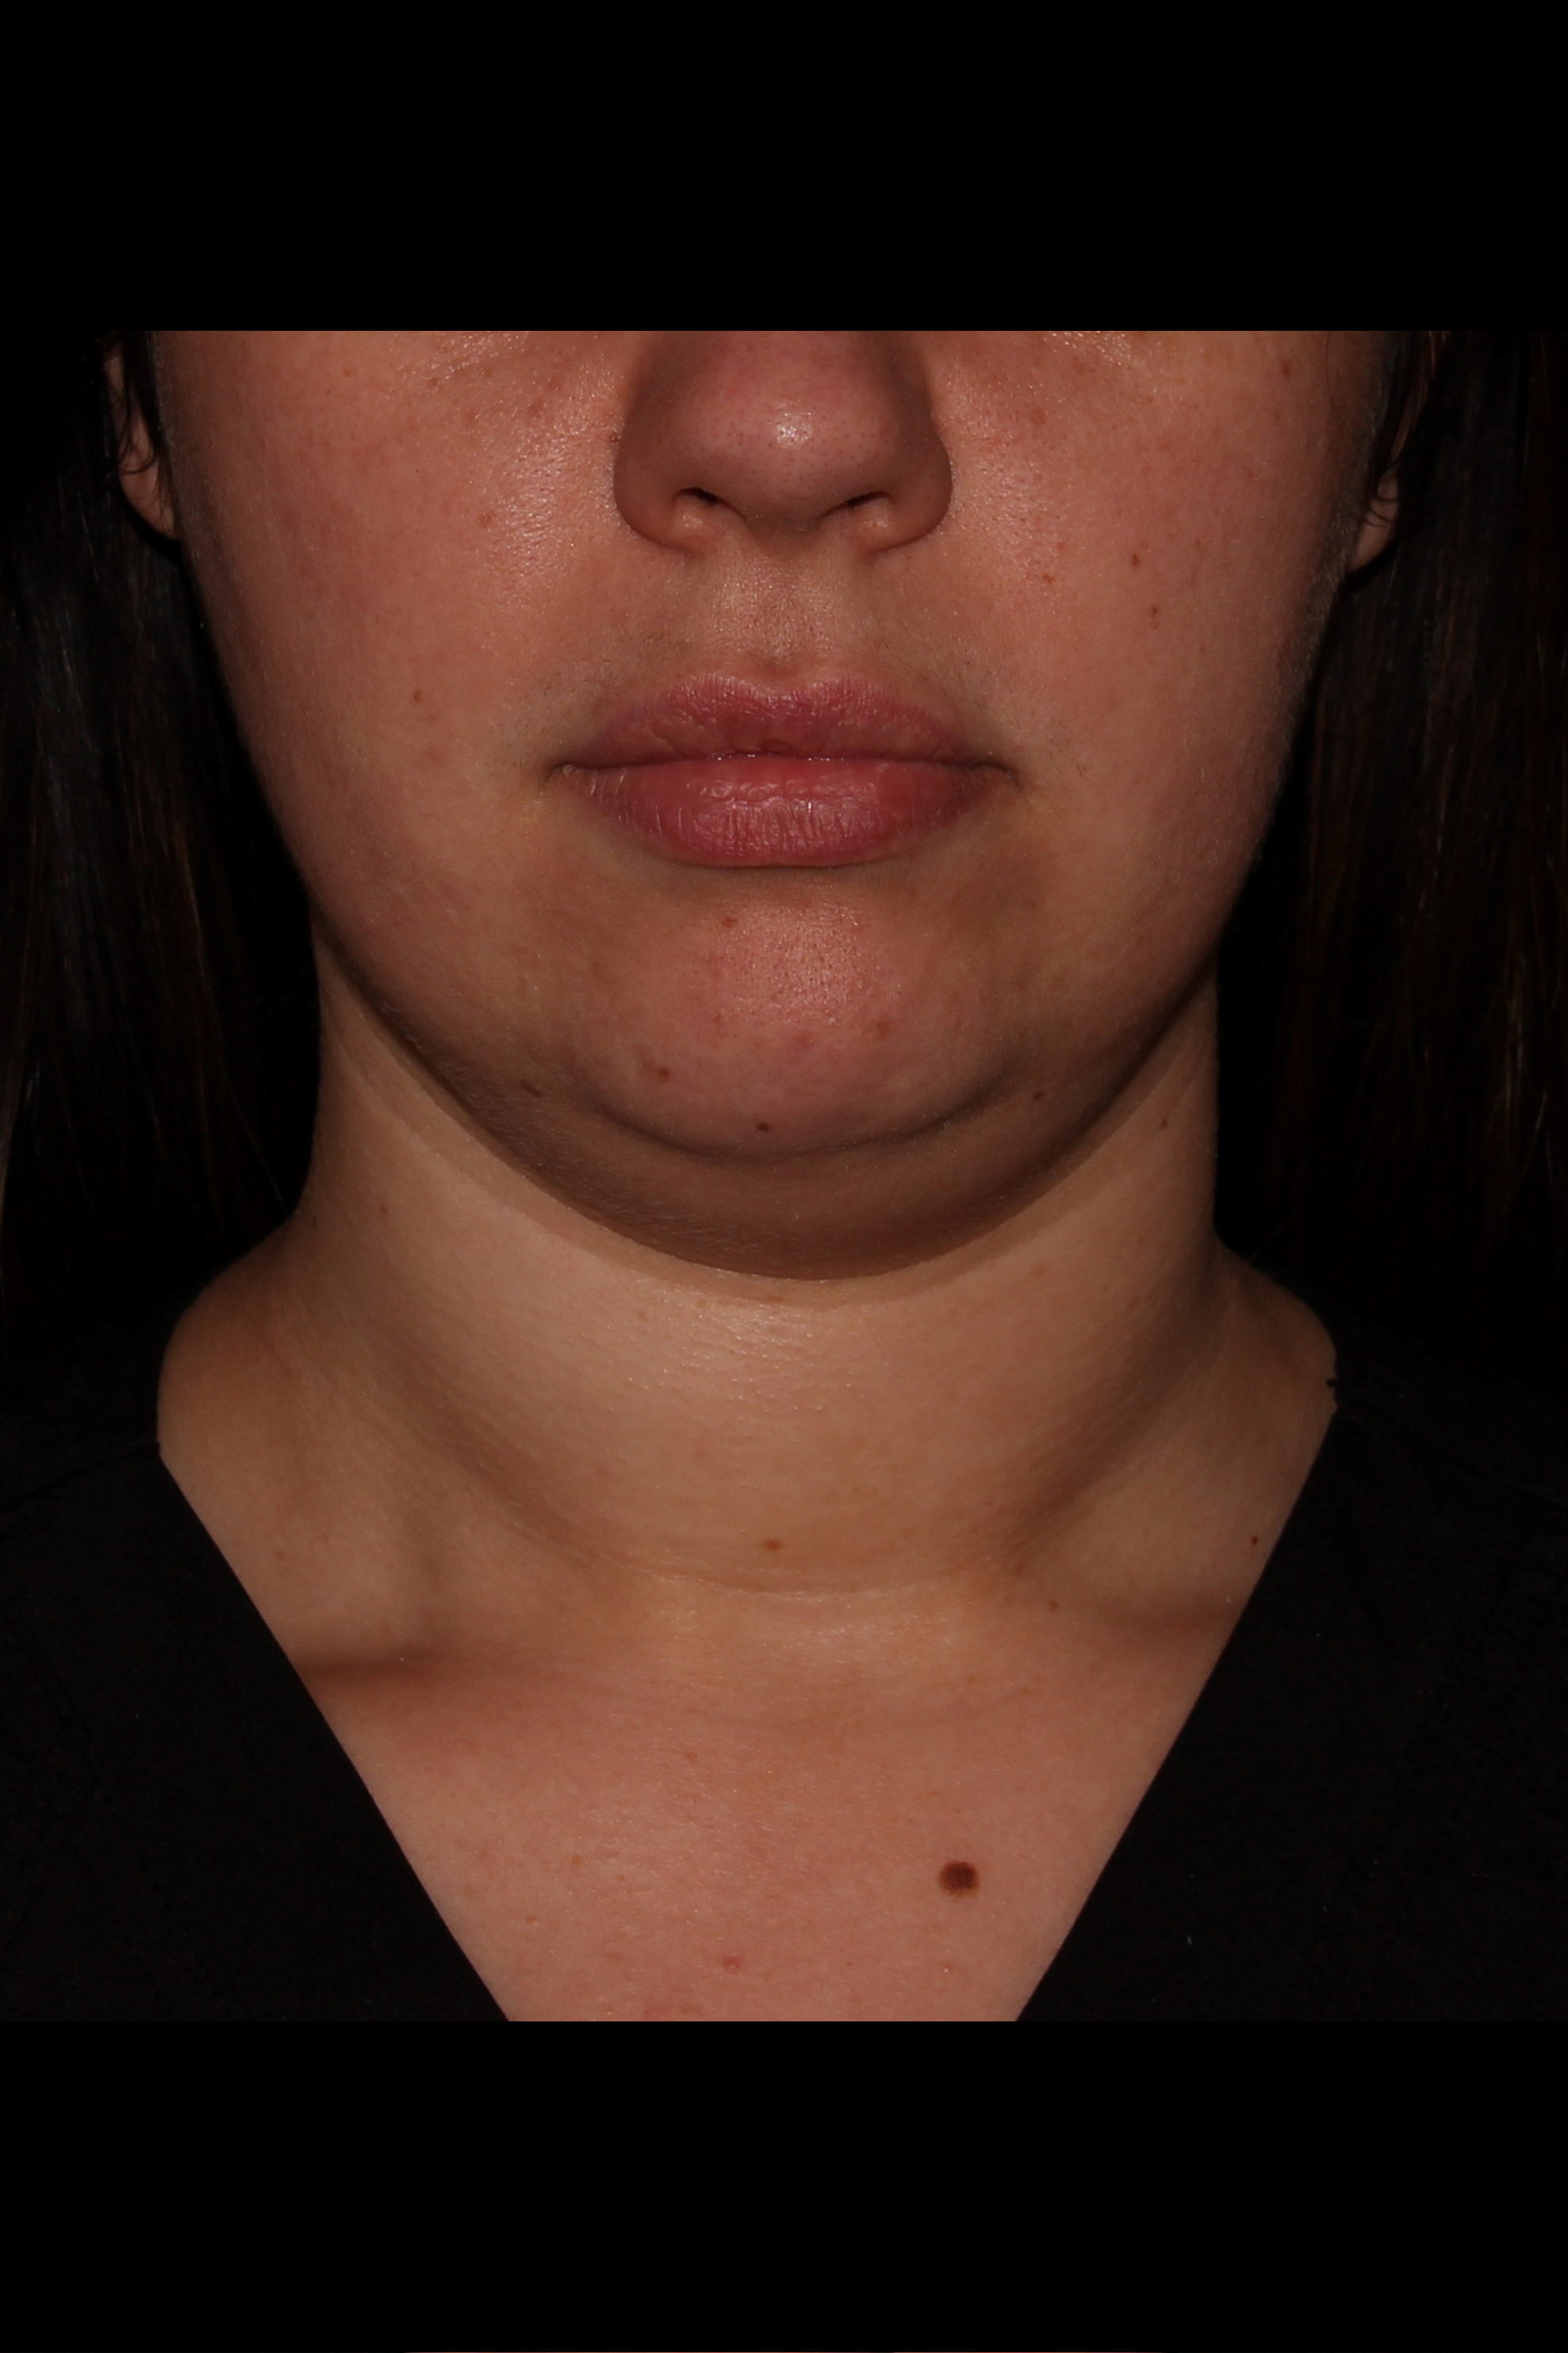 Before Neck Liposuction - Neck aka Chin liposuction & Buccal Fat Pad Removal